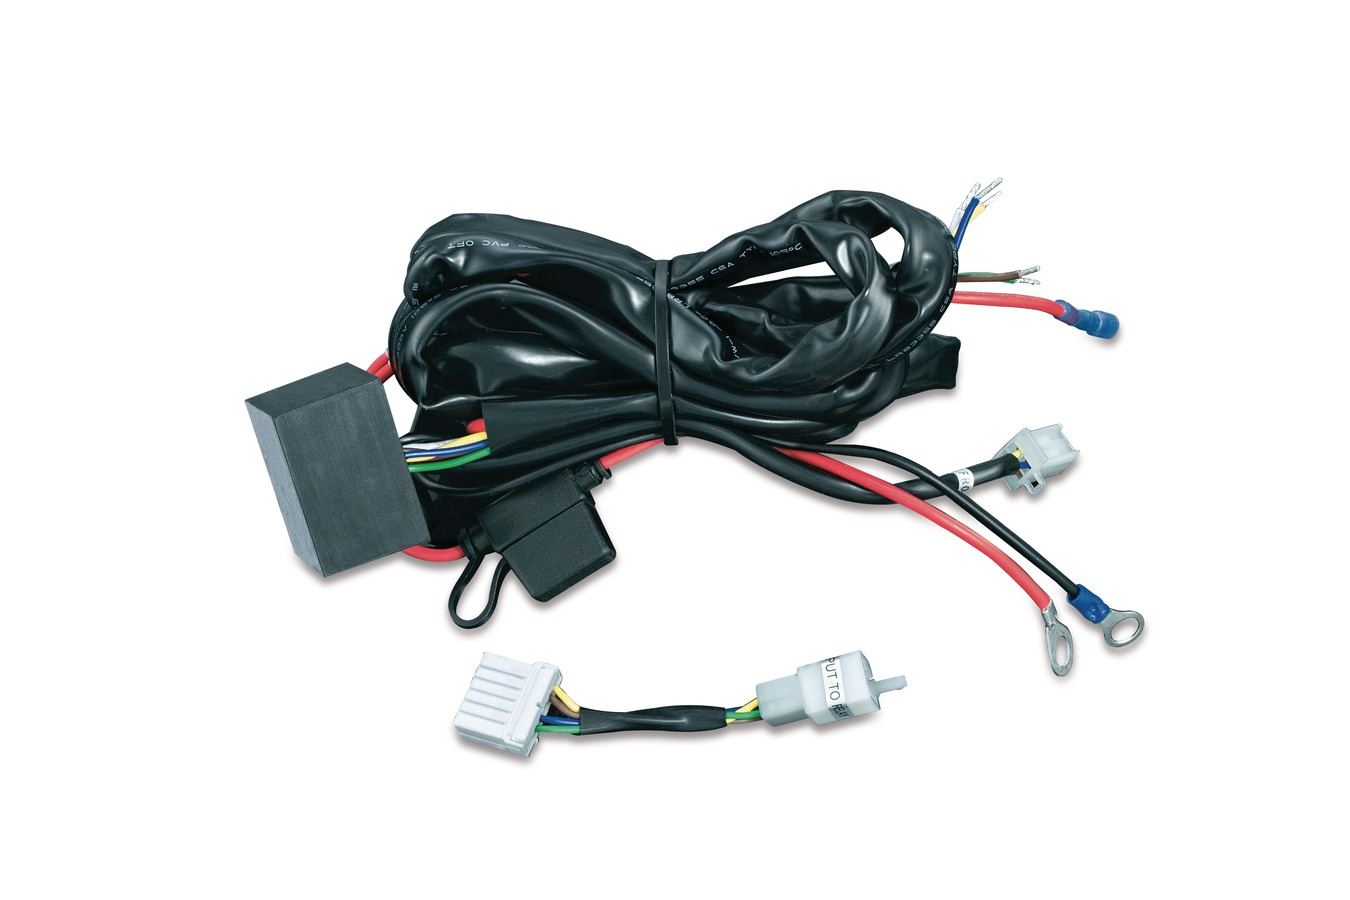 Trailer Wiring Harnesses | Trailer Hitches & Wiring | Touring - Victory Trailer Wiring Diagram